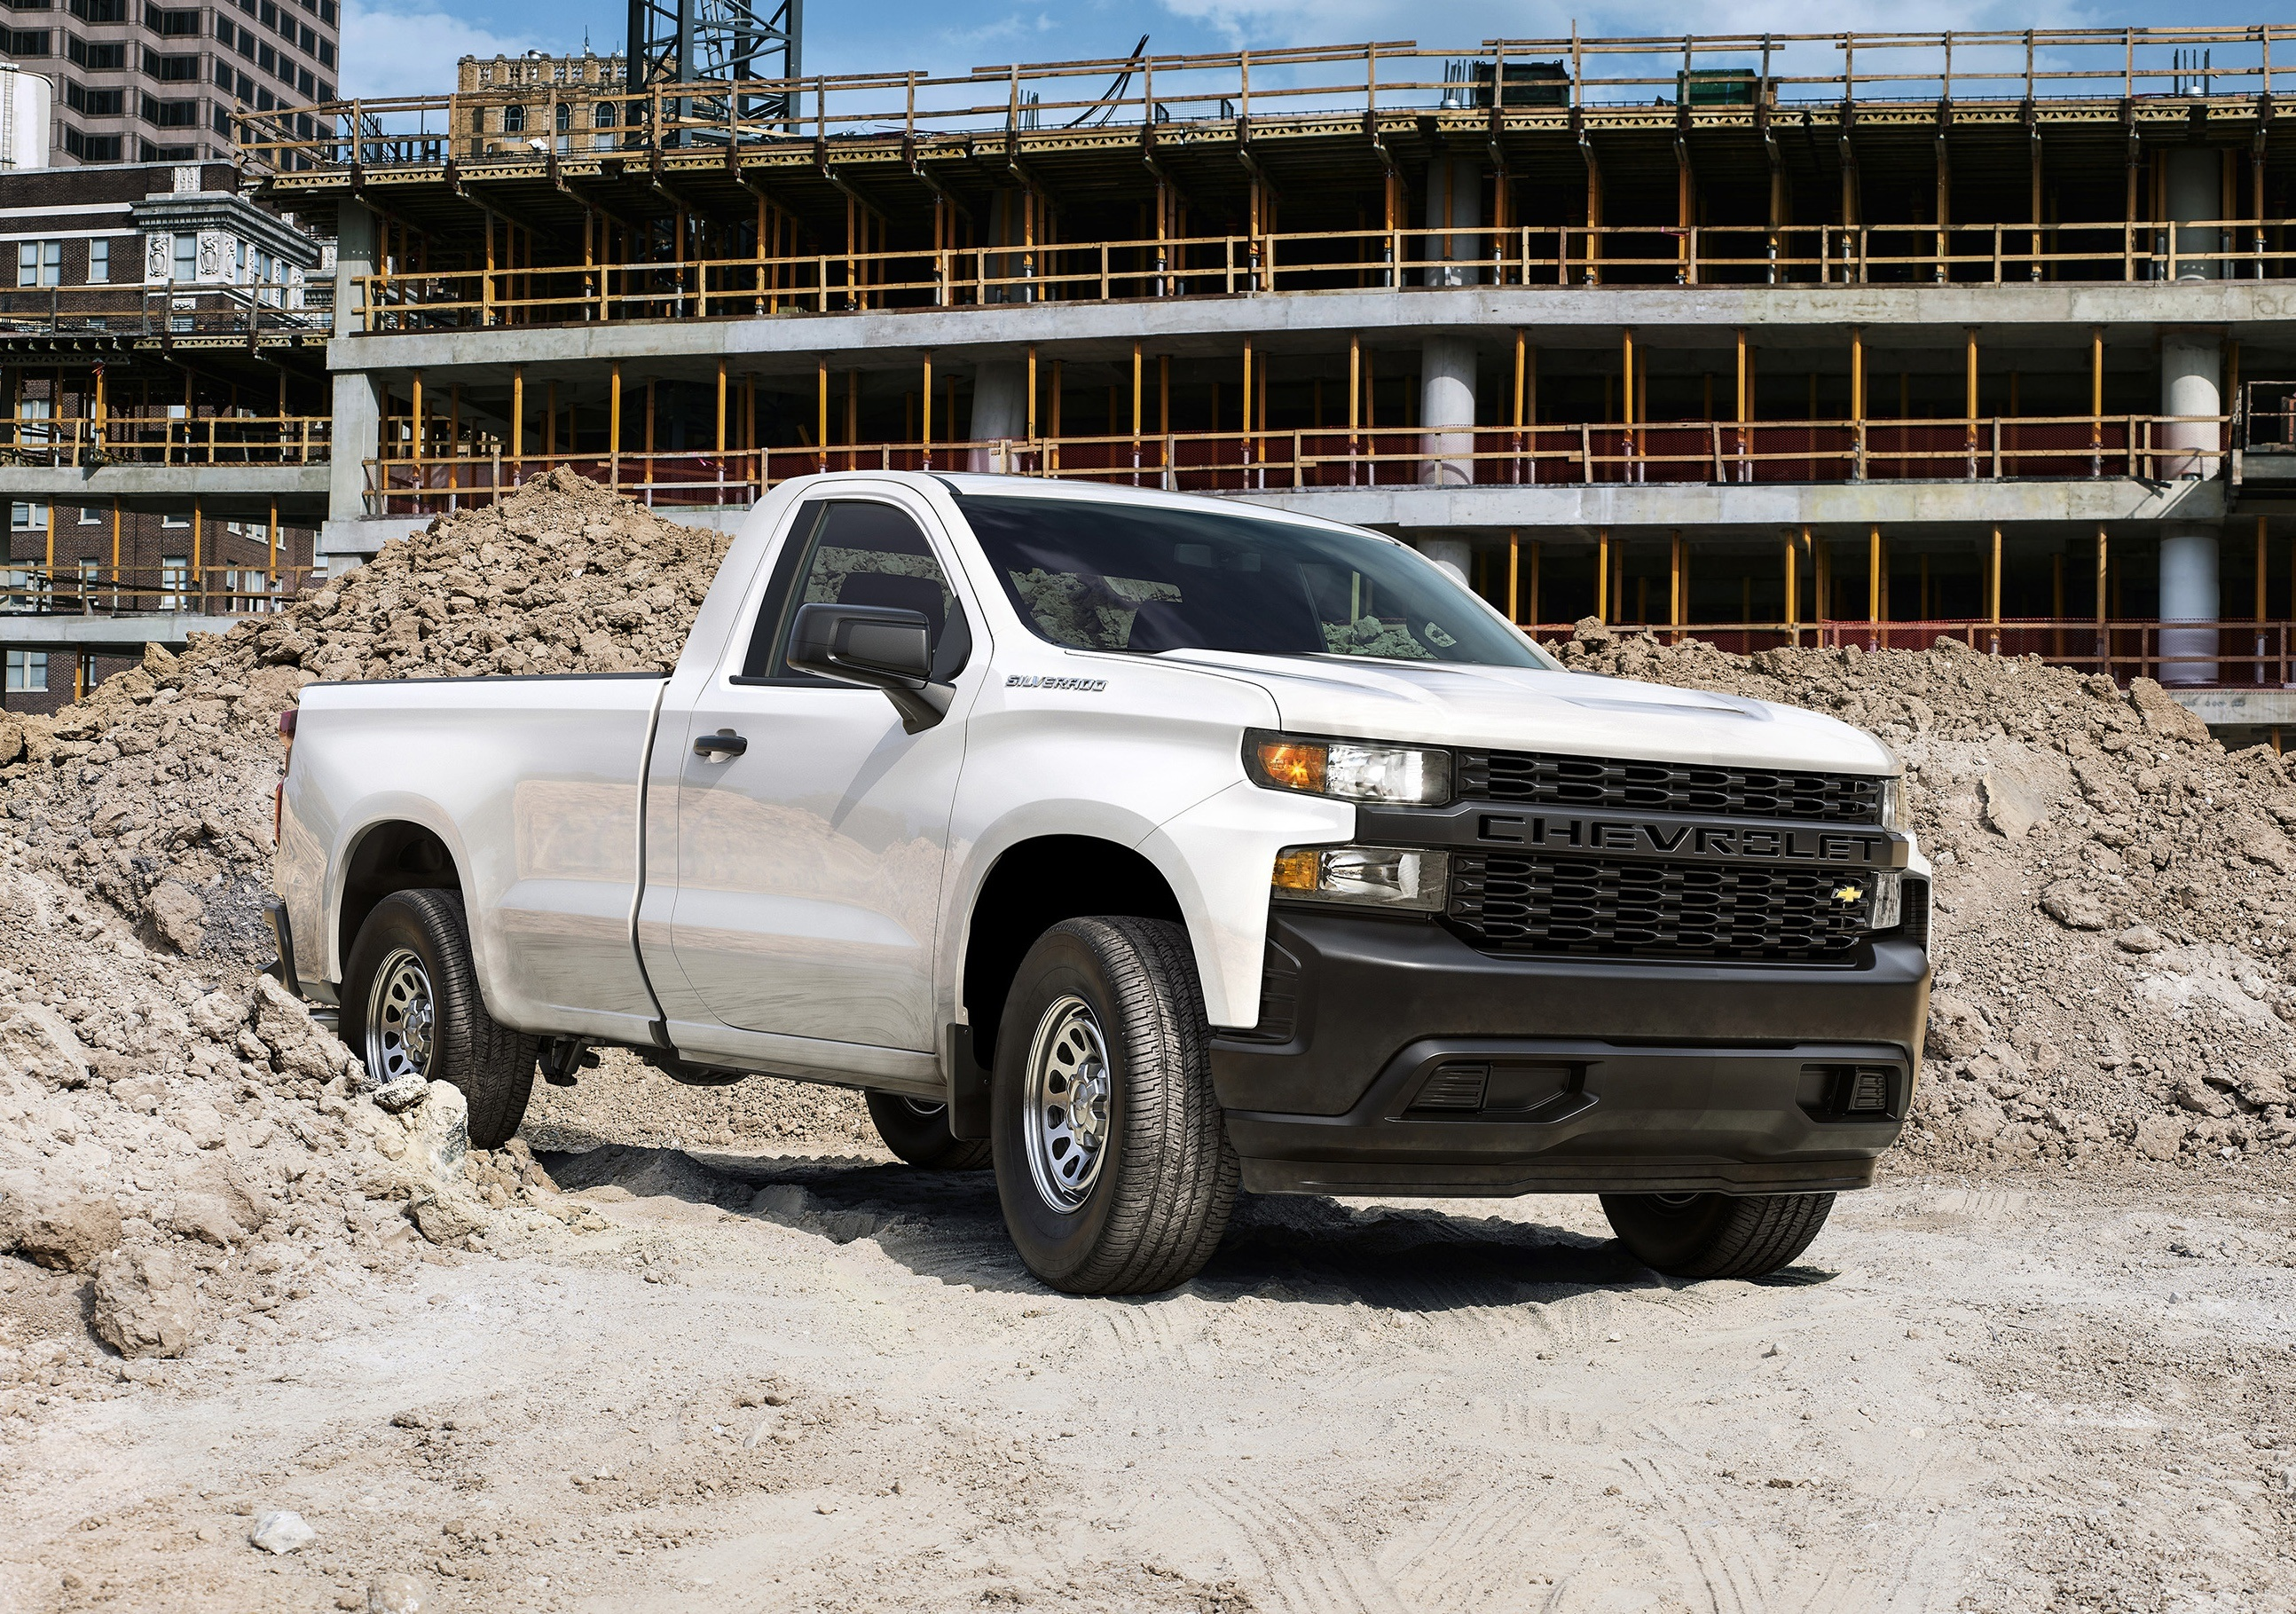 2019-chevy-silverado-trim-levels-work-truck-1